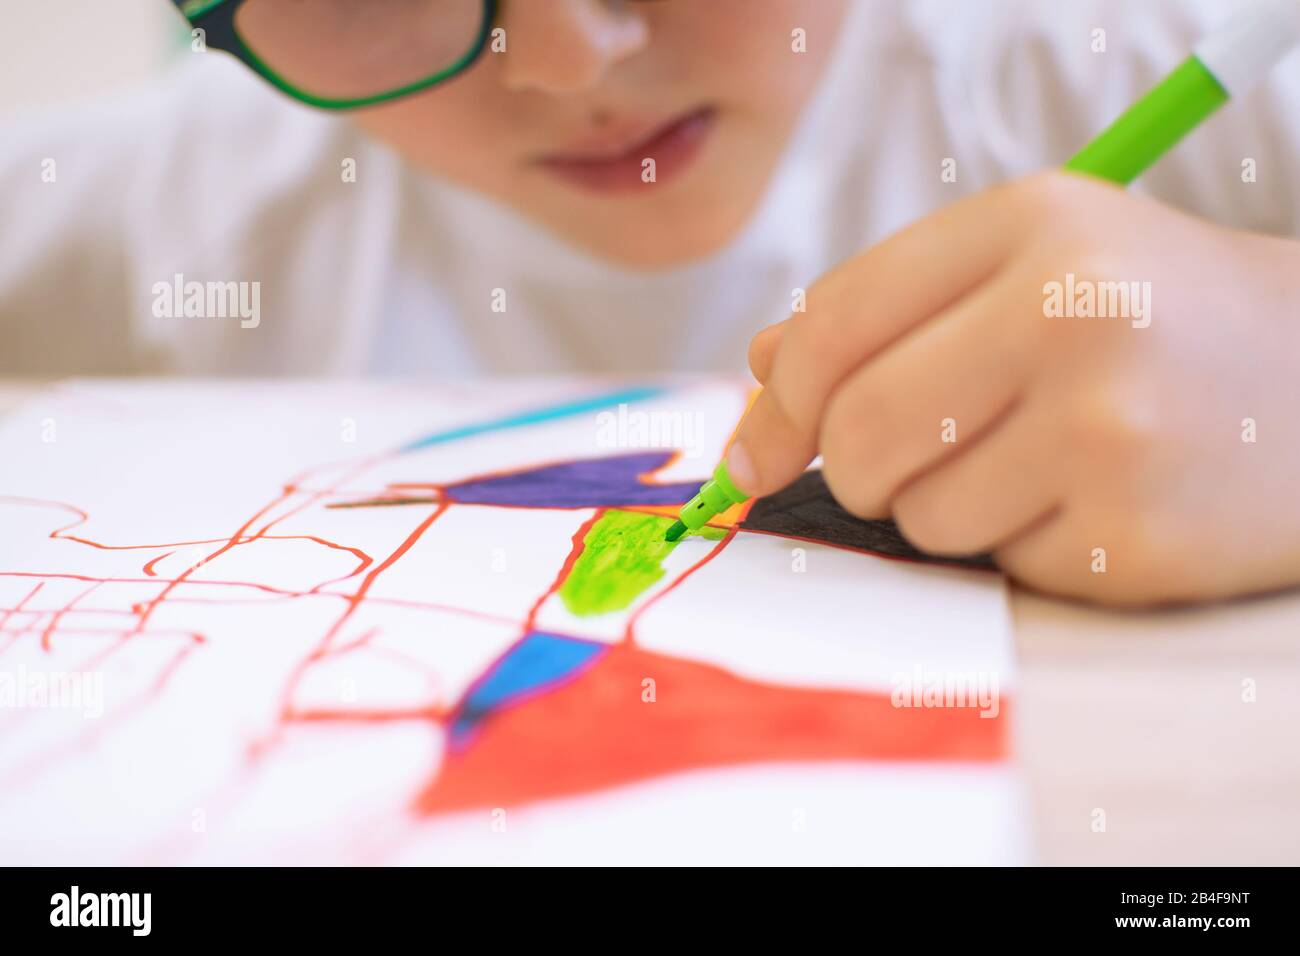 Child drawing abstract forms on a paper on vibrant colours. Introducing abstract form through the shadow of objects in art education class at school Stock Photo